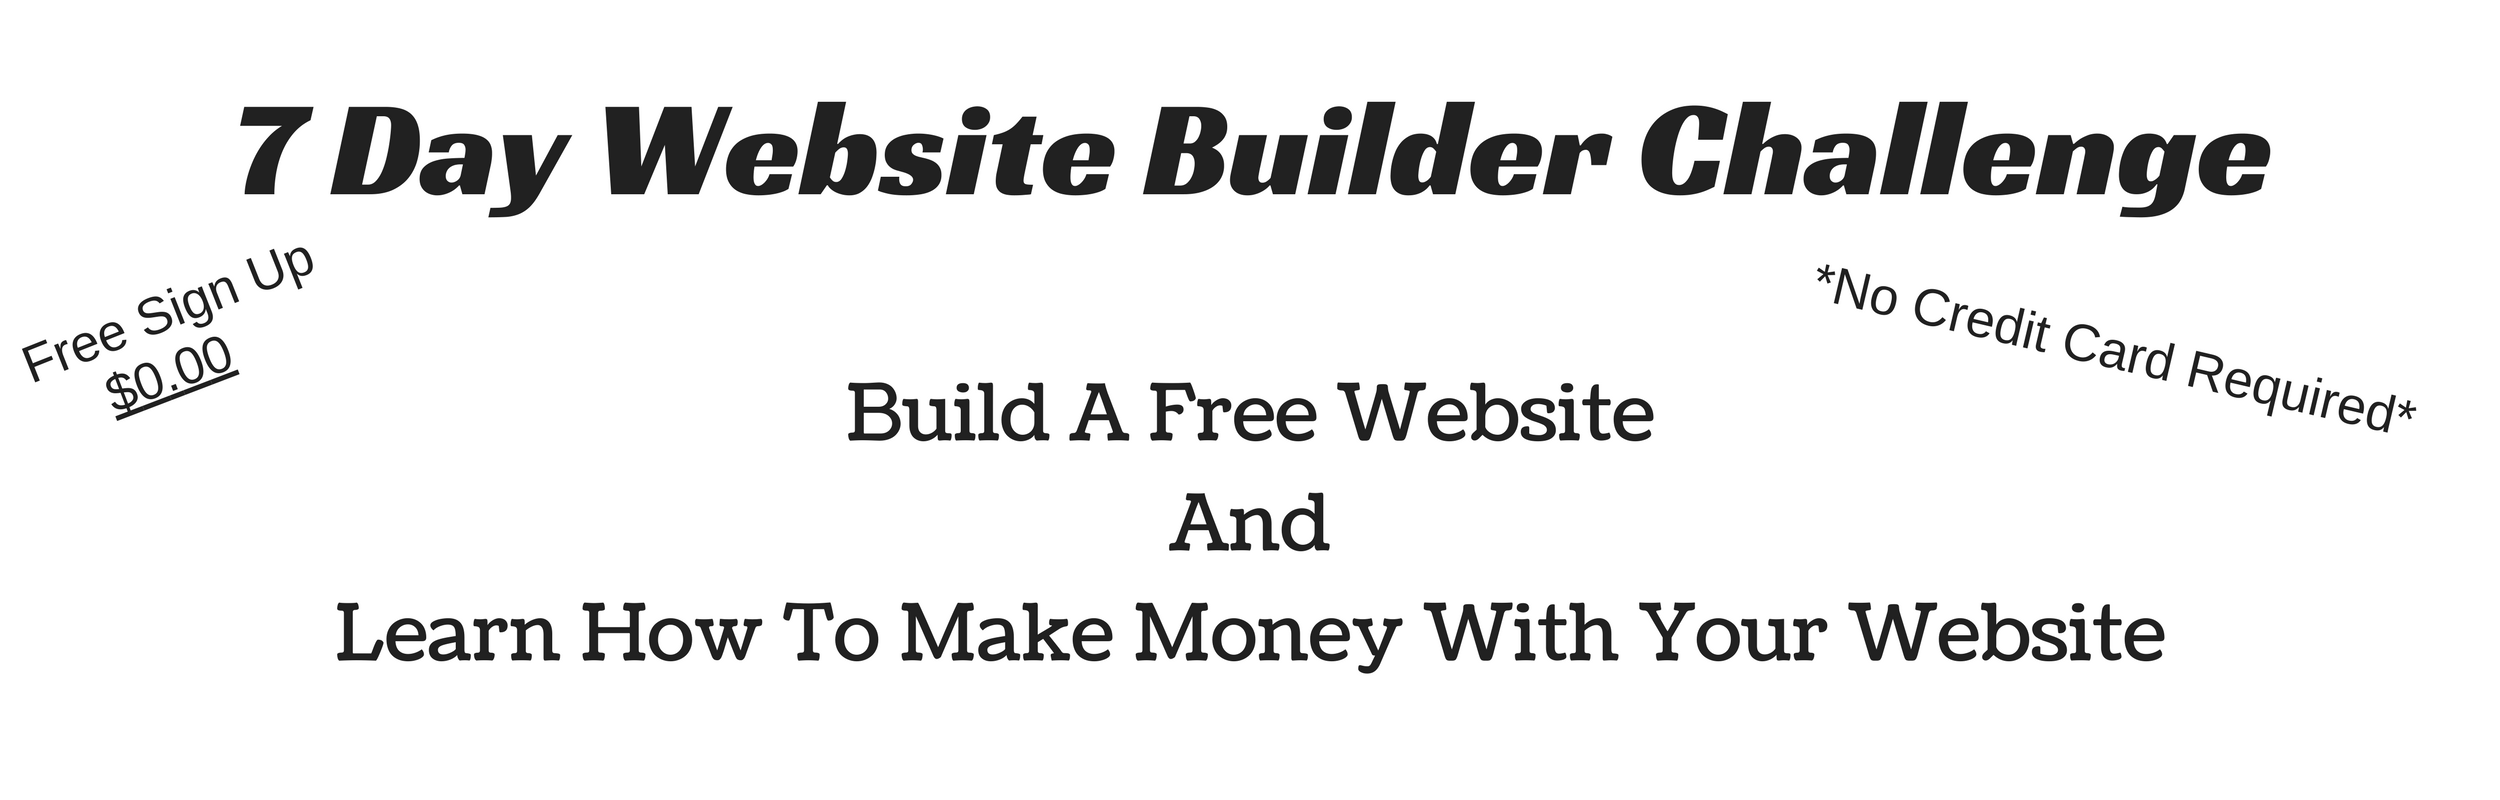 Build A Free Website Learn How To Make Money With Your Website